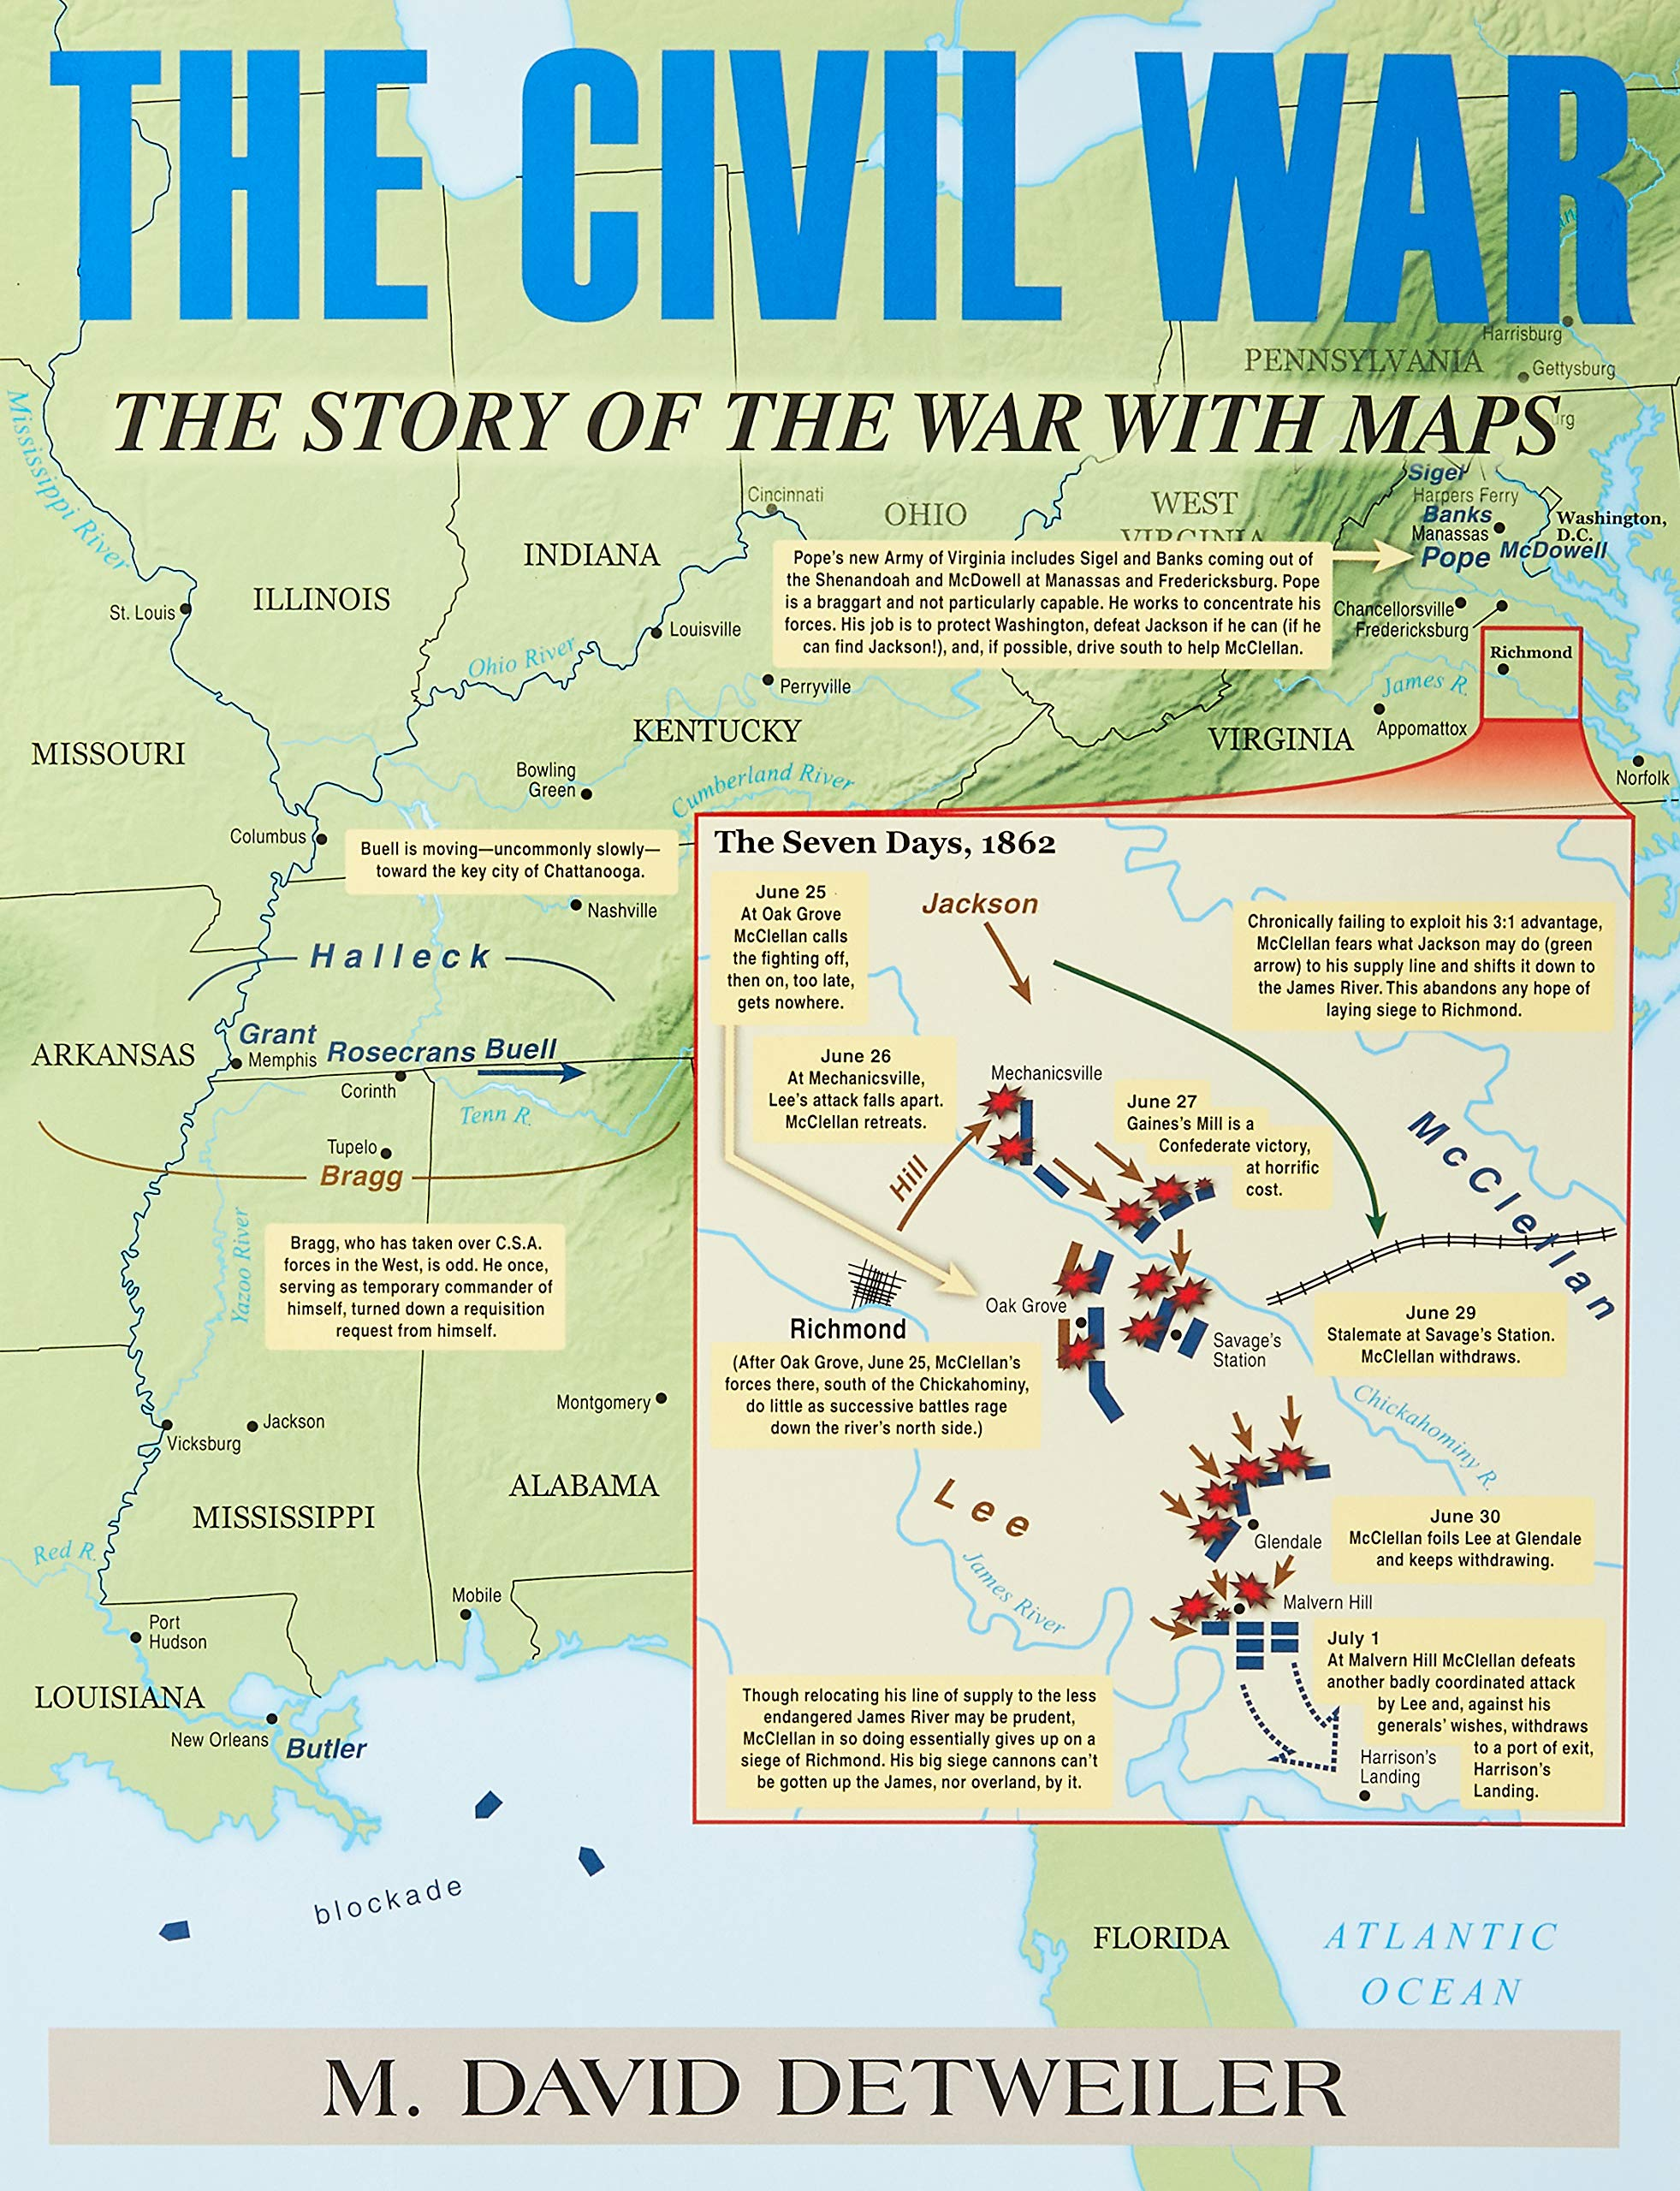 The Civil War: The Story of the War with Maps: David M ... on fort sumter map, war of 1812 map, revolutionary war map, mexican-american war map, theater map, civil war hats, sherman's atlanta campaign map, union map, gettysburg map, battle of shiloh map, slavery in america map, world map, appomattox map, united states map, civil war music, gulf war map, gold rush map, spanish-american war map, compromise of 1850 map, battle of antietam map, korean war map, civil war currency, civil war uniforms, battle of vicksburg map,